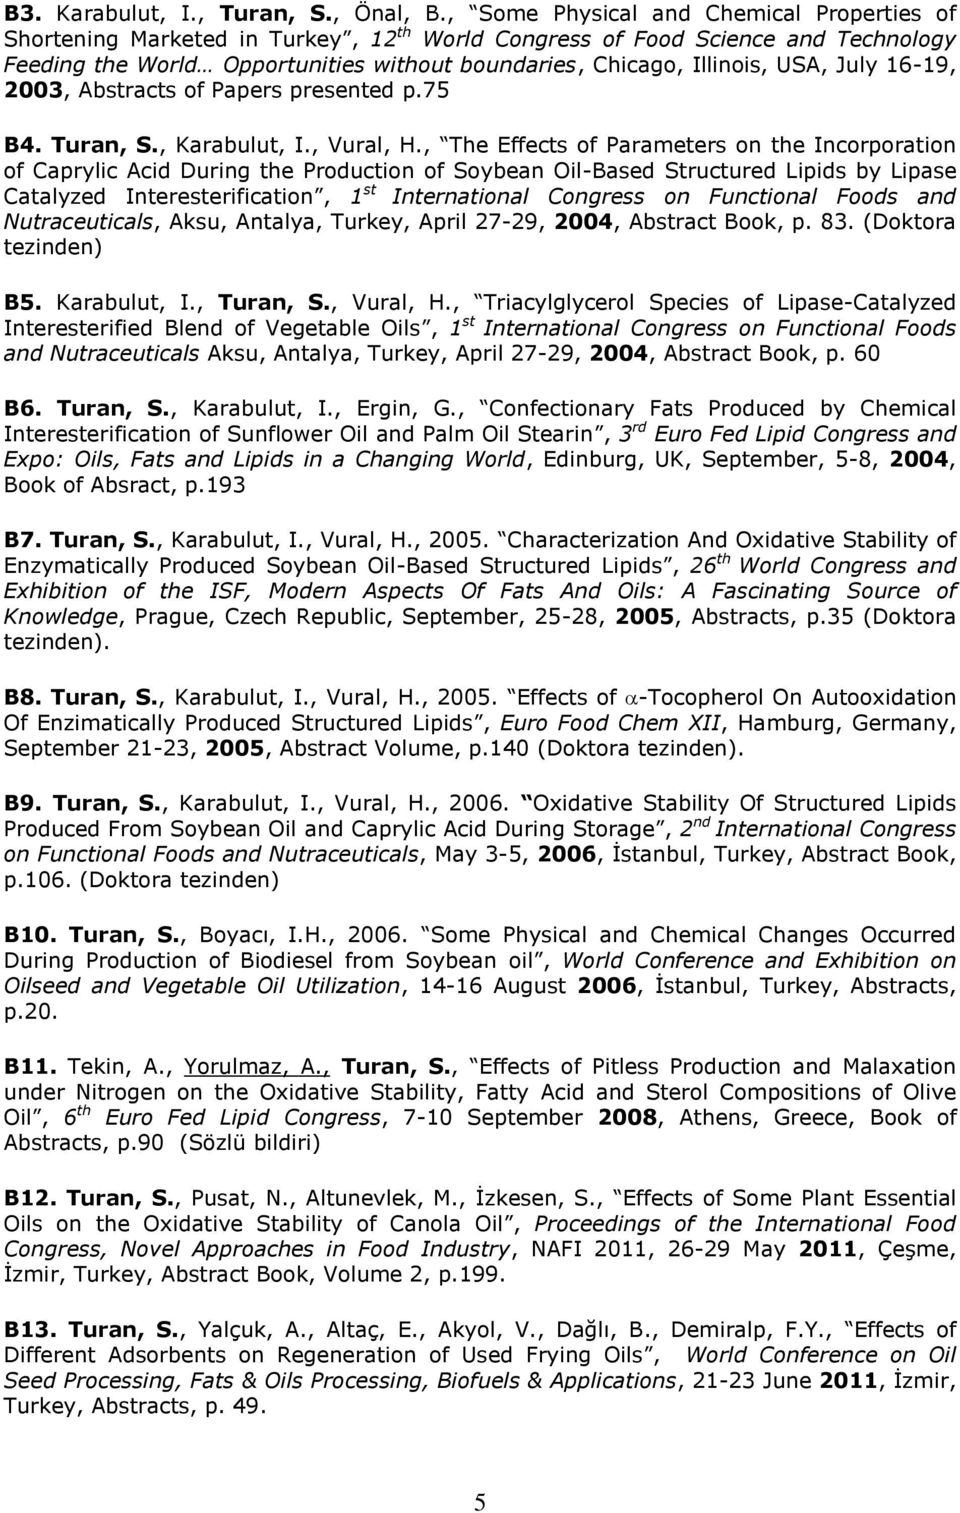 USA, July 16-19, 2003, Abstracts of Papers presented p.75 B4. Turan, S., Karabulut, I., Vural, H.